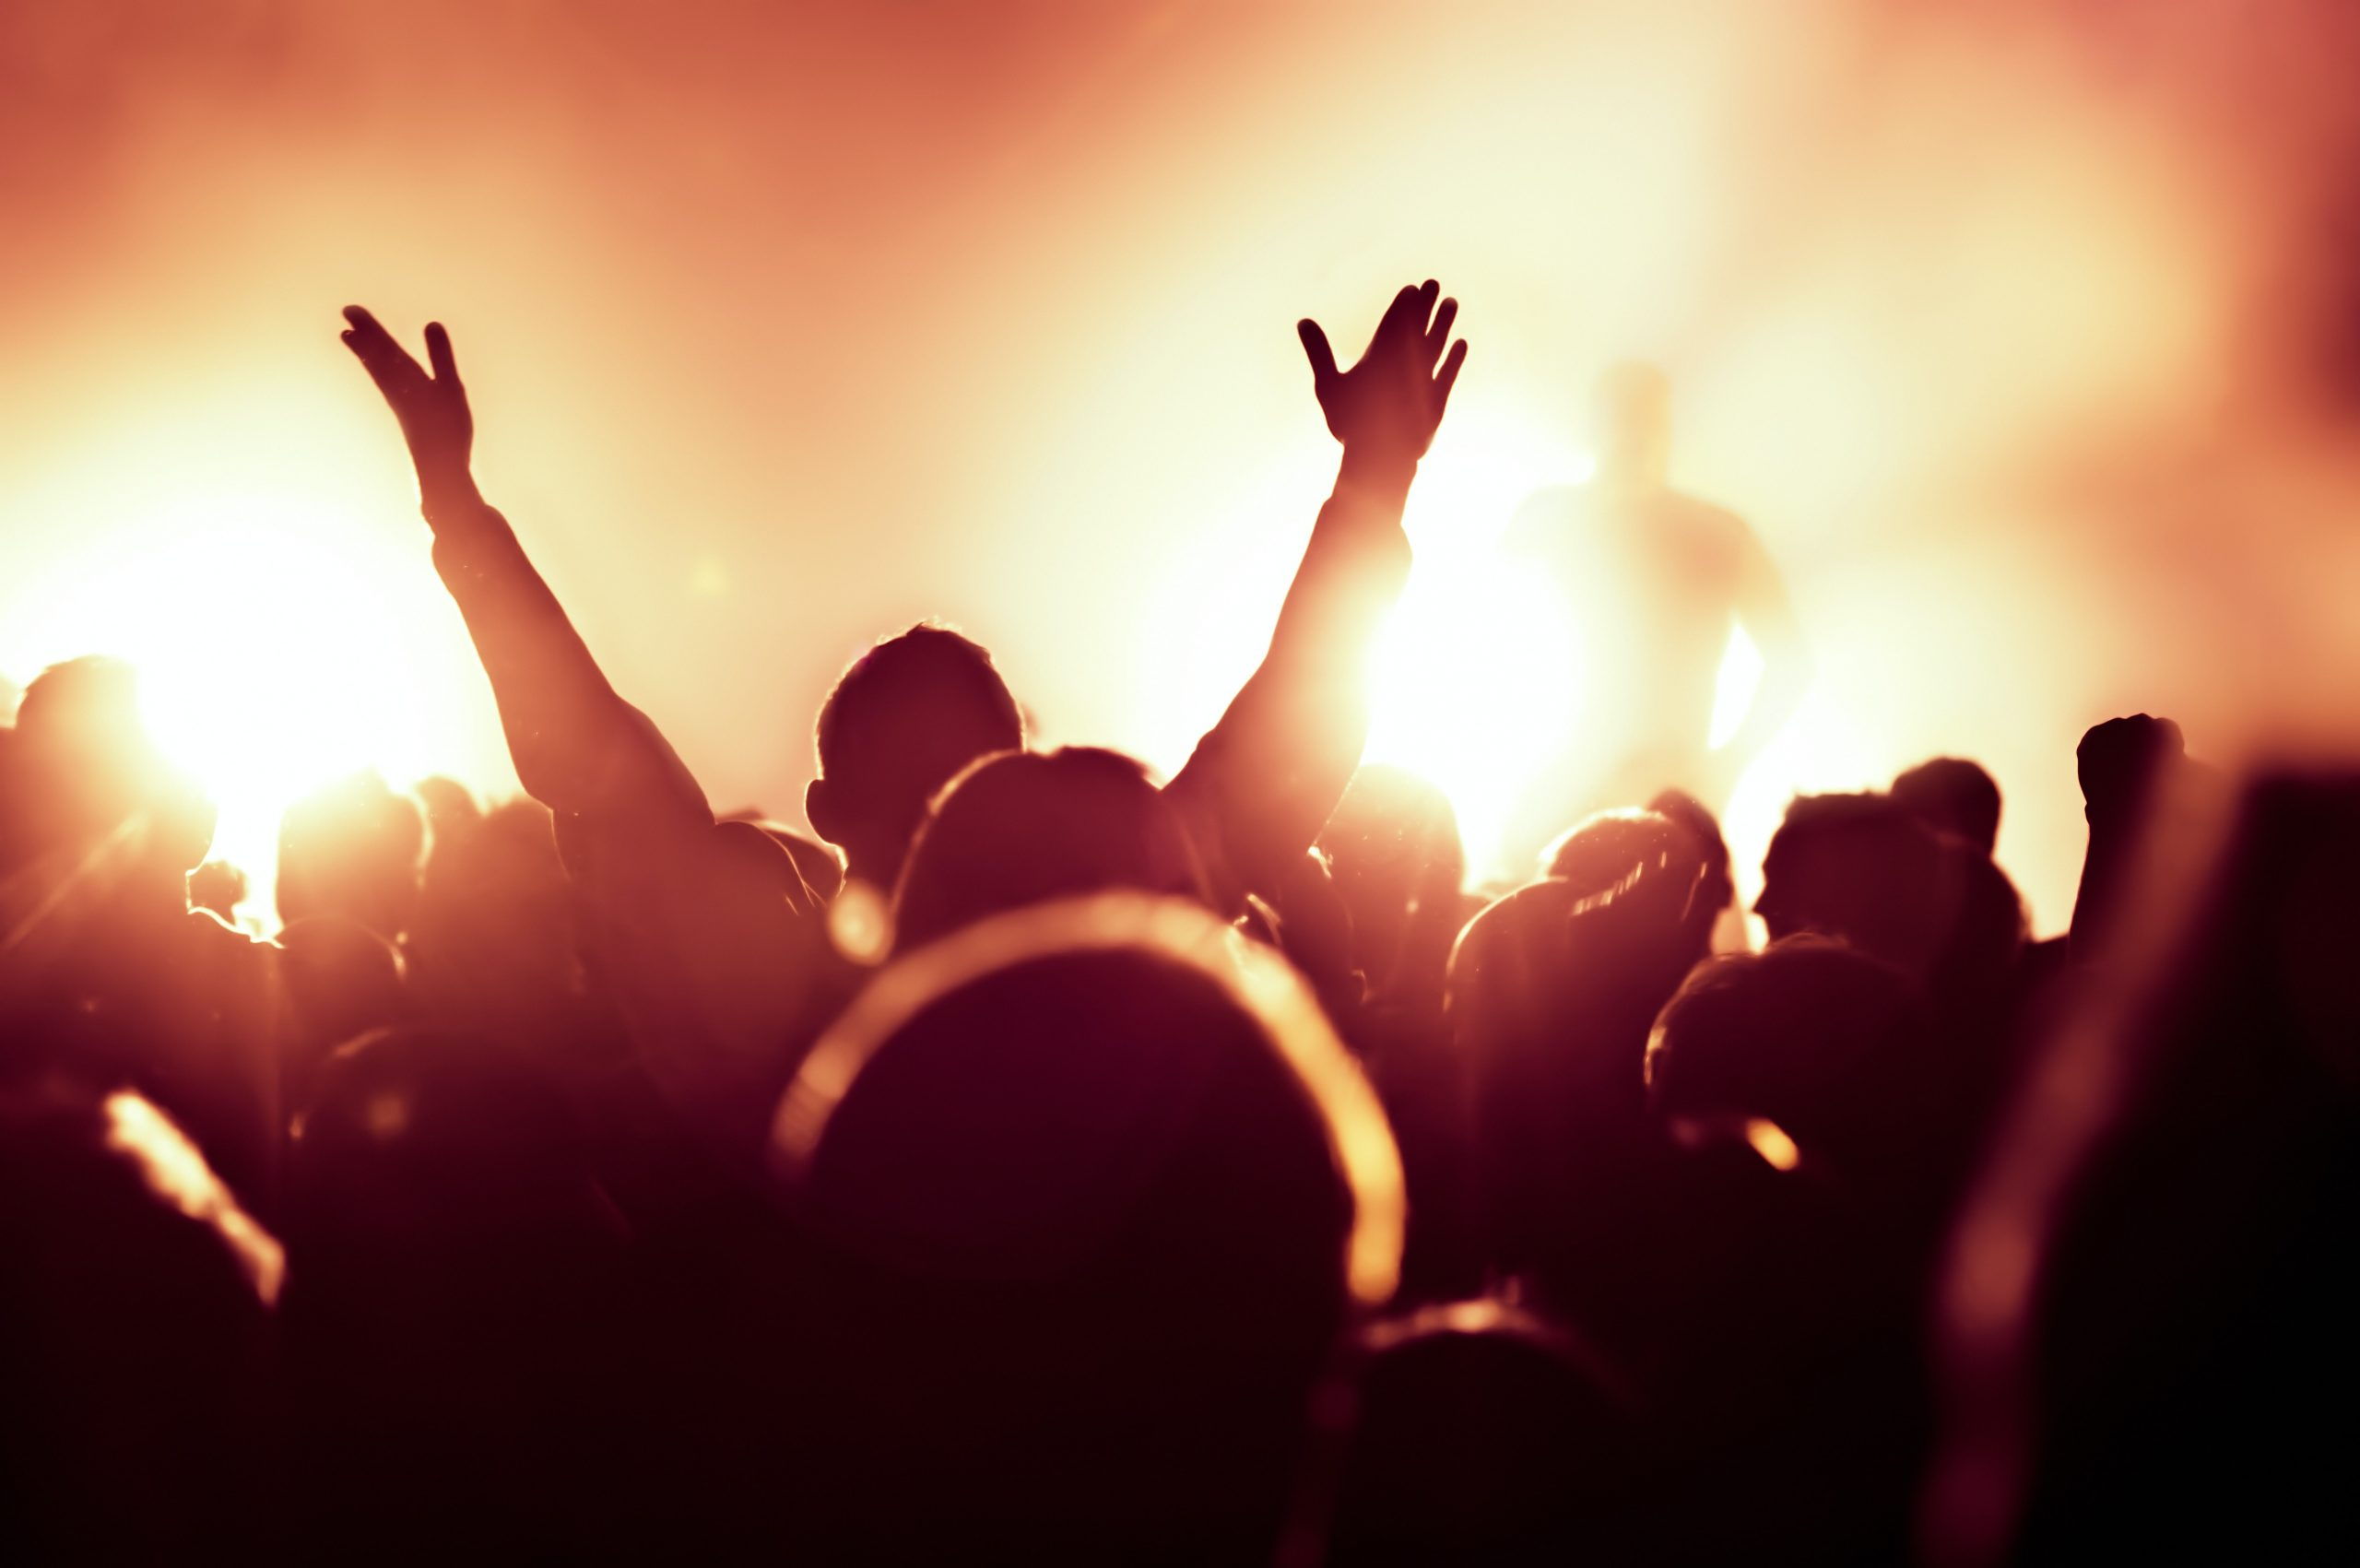 Live venues are the lifeblood of music culture and must survive | The Conversation